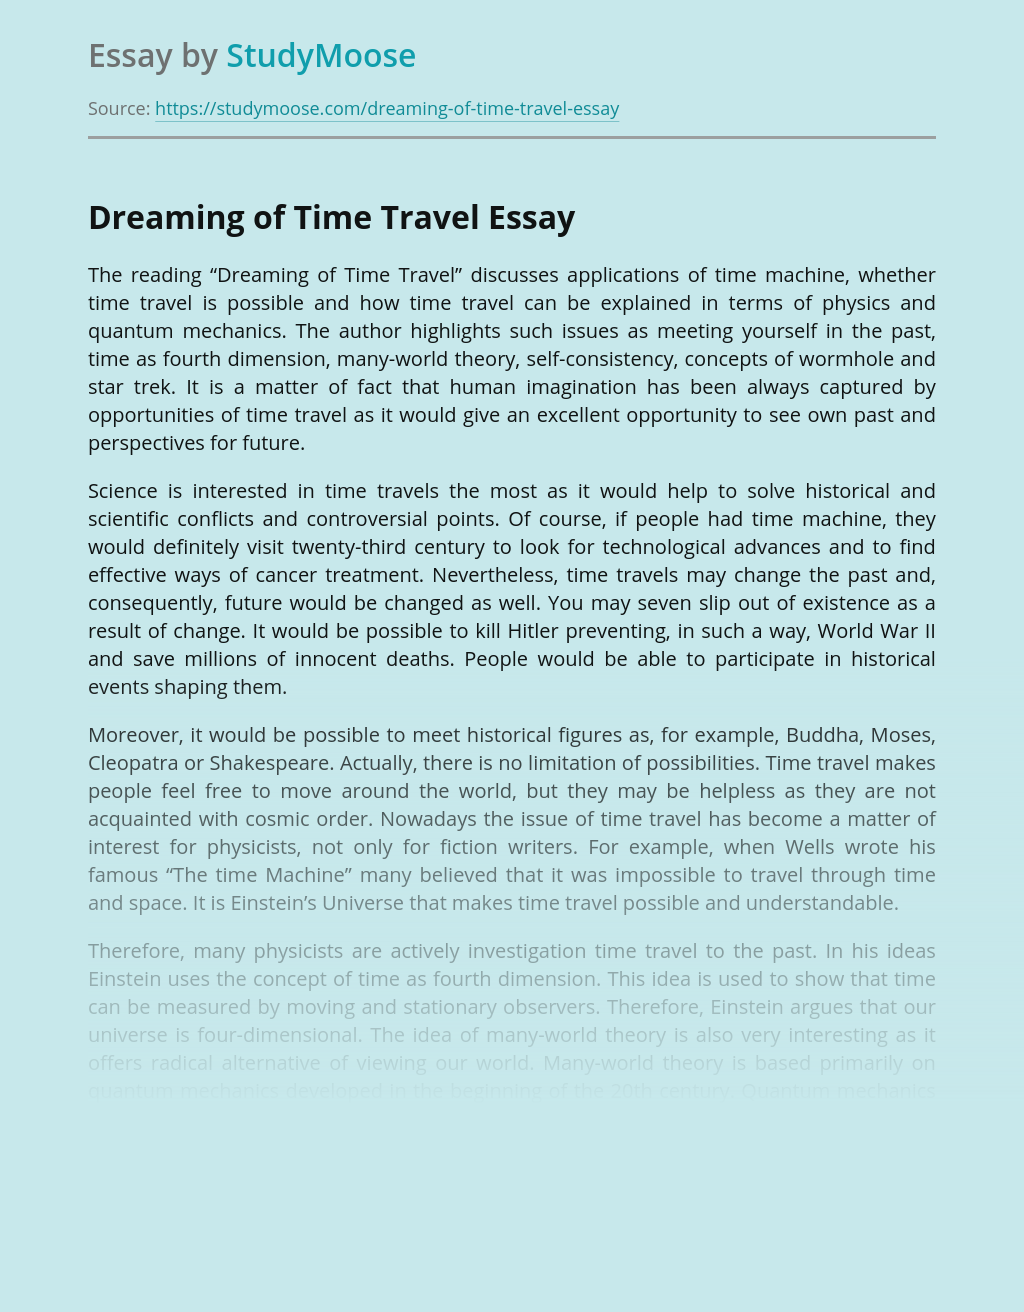 Dreaming of Time Travel